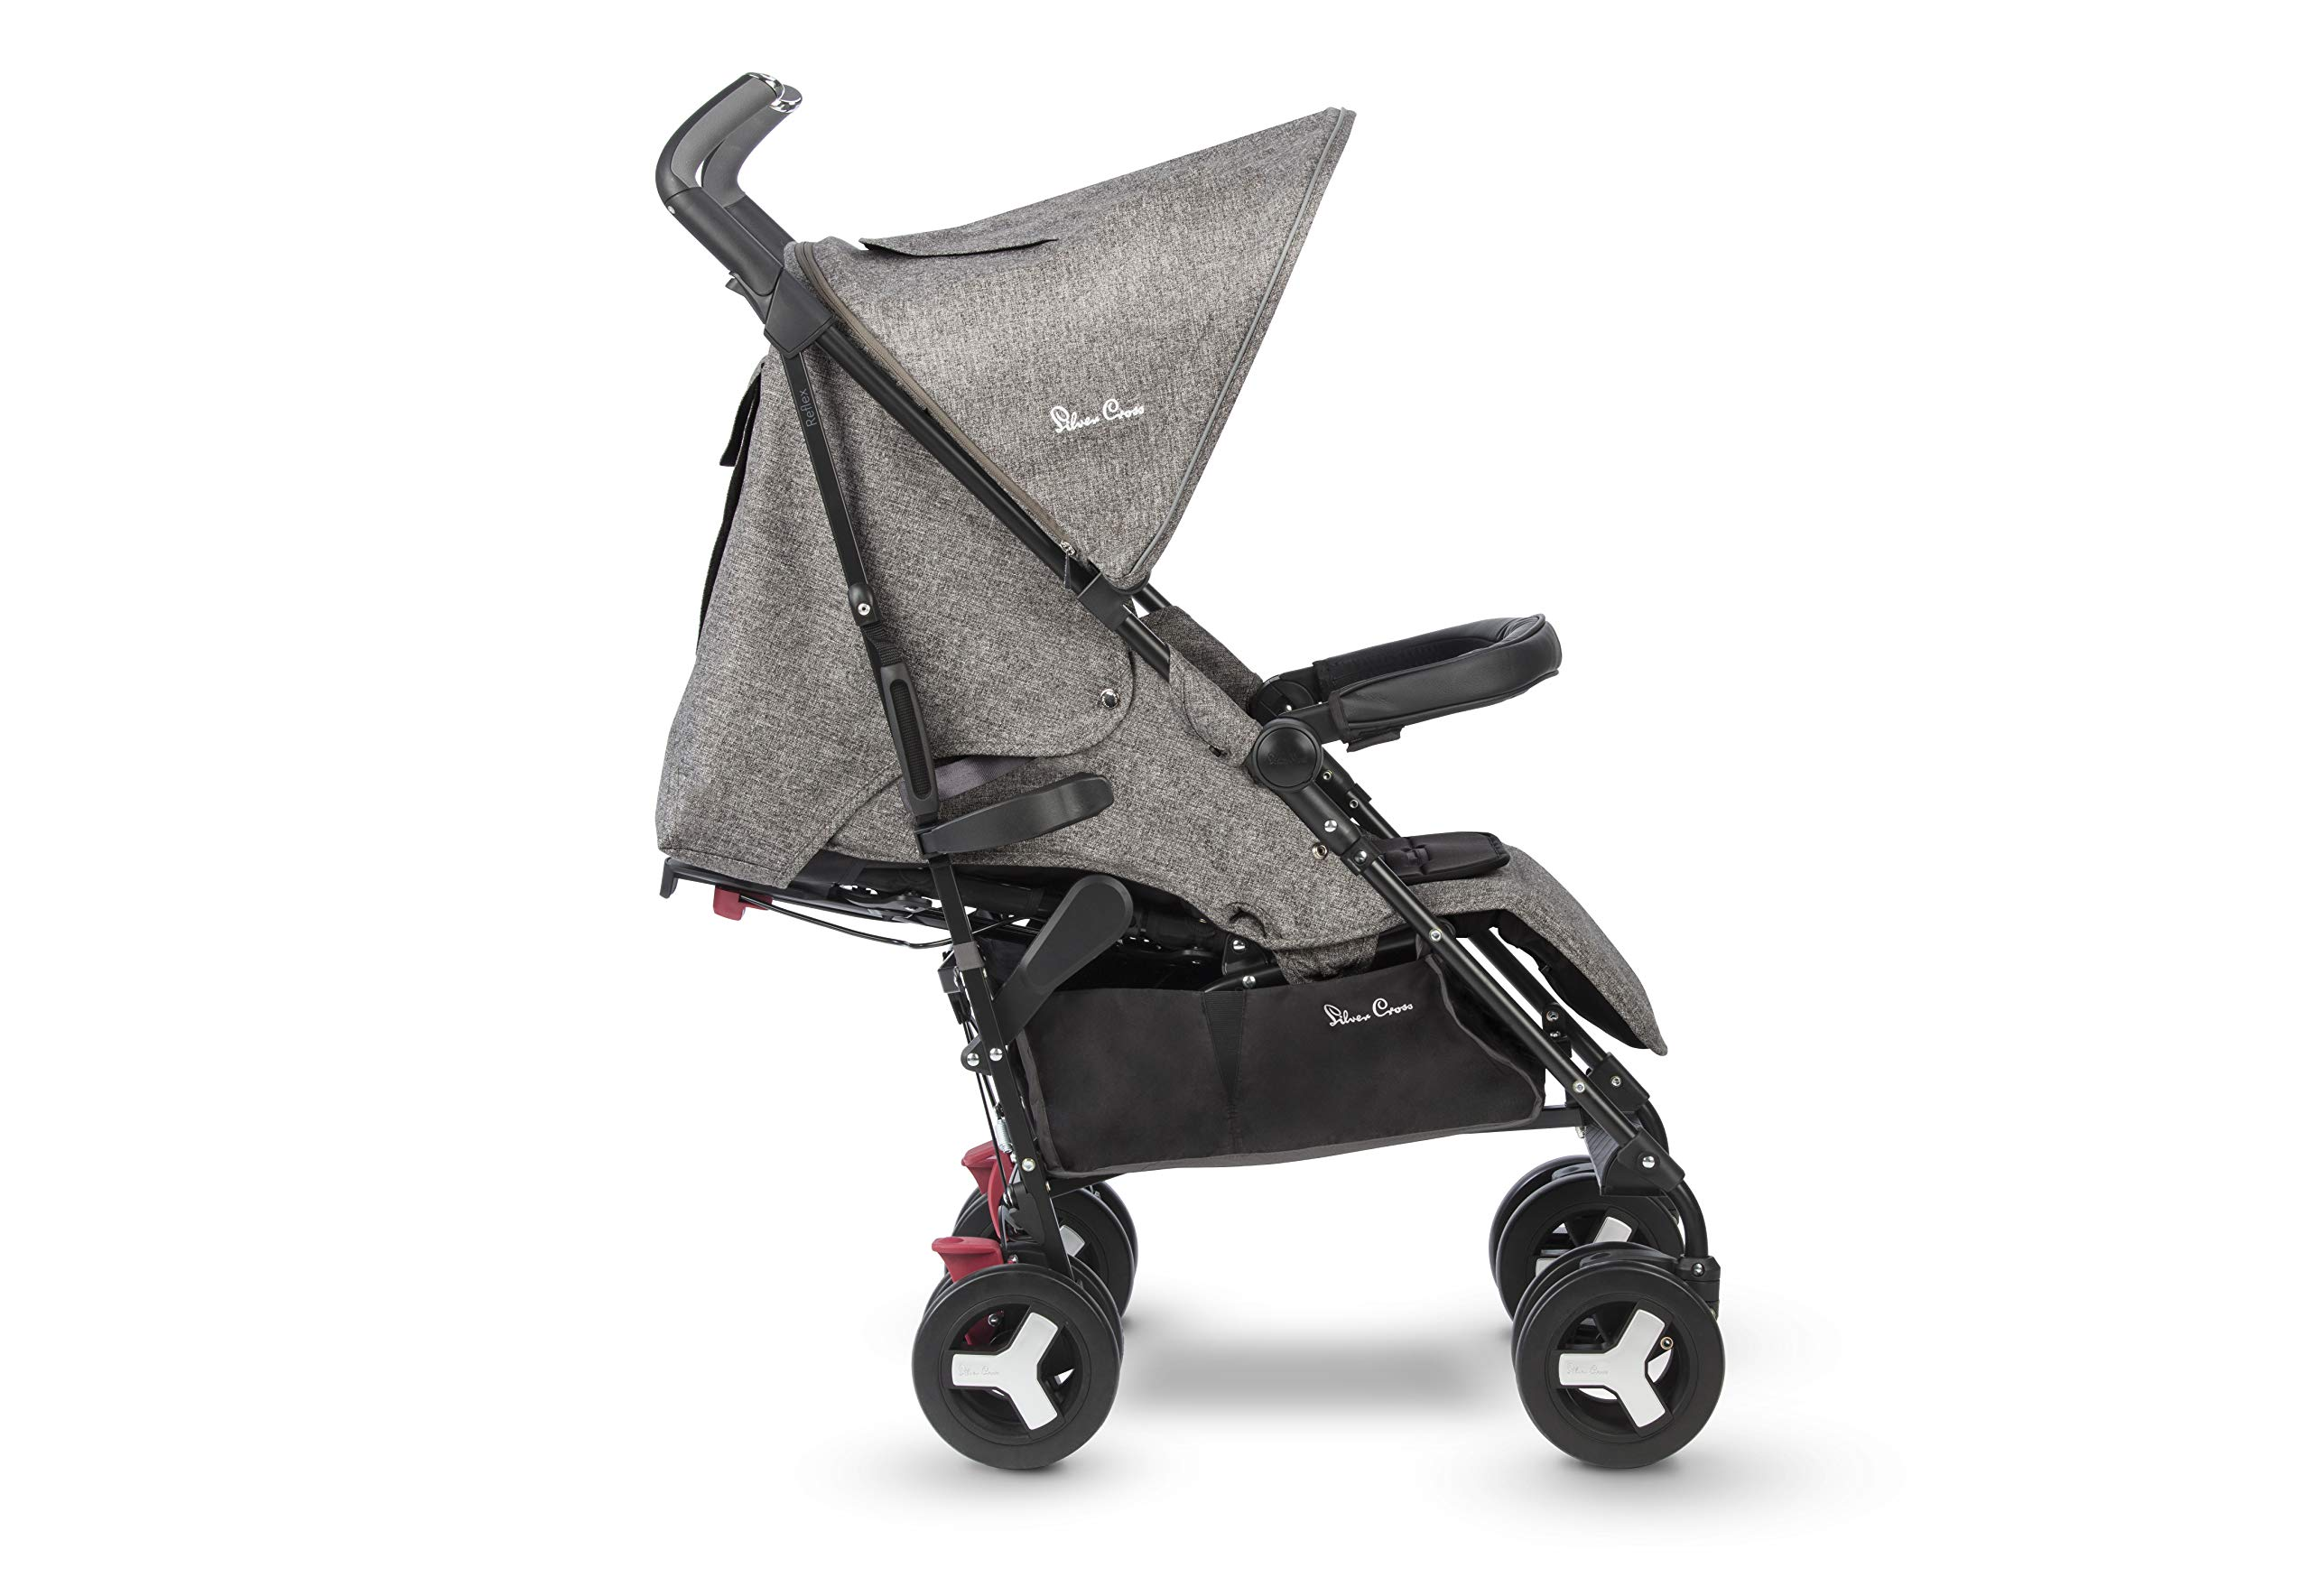 Silver Cross Reflex Brompton Silver Cross Reflex is an advanced stroller, suitable from birth up to 25kg, with a wealth of features 5-point harness Reflex comes with an exclusive matching new-born head hugger, meaning your baby is super cosy when the pushchair is in lie flat mode 2